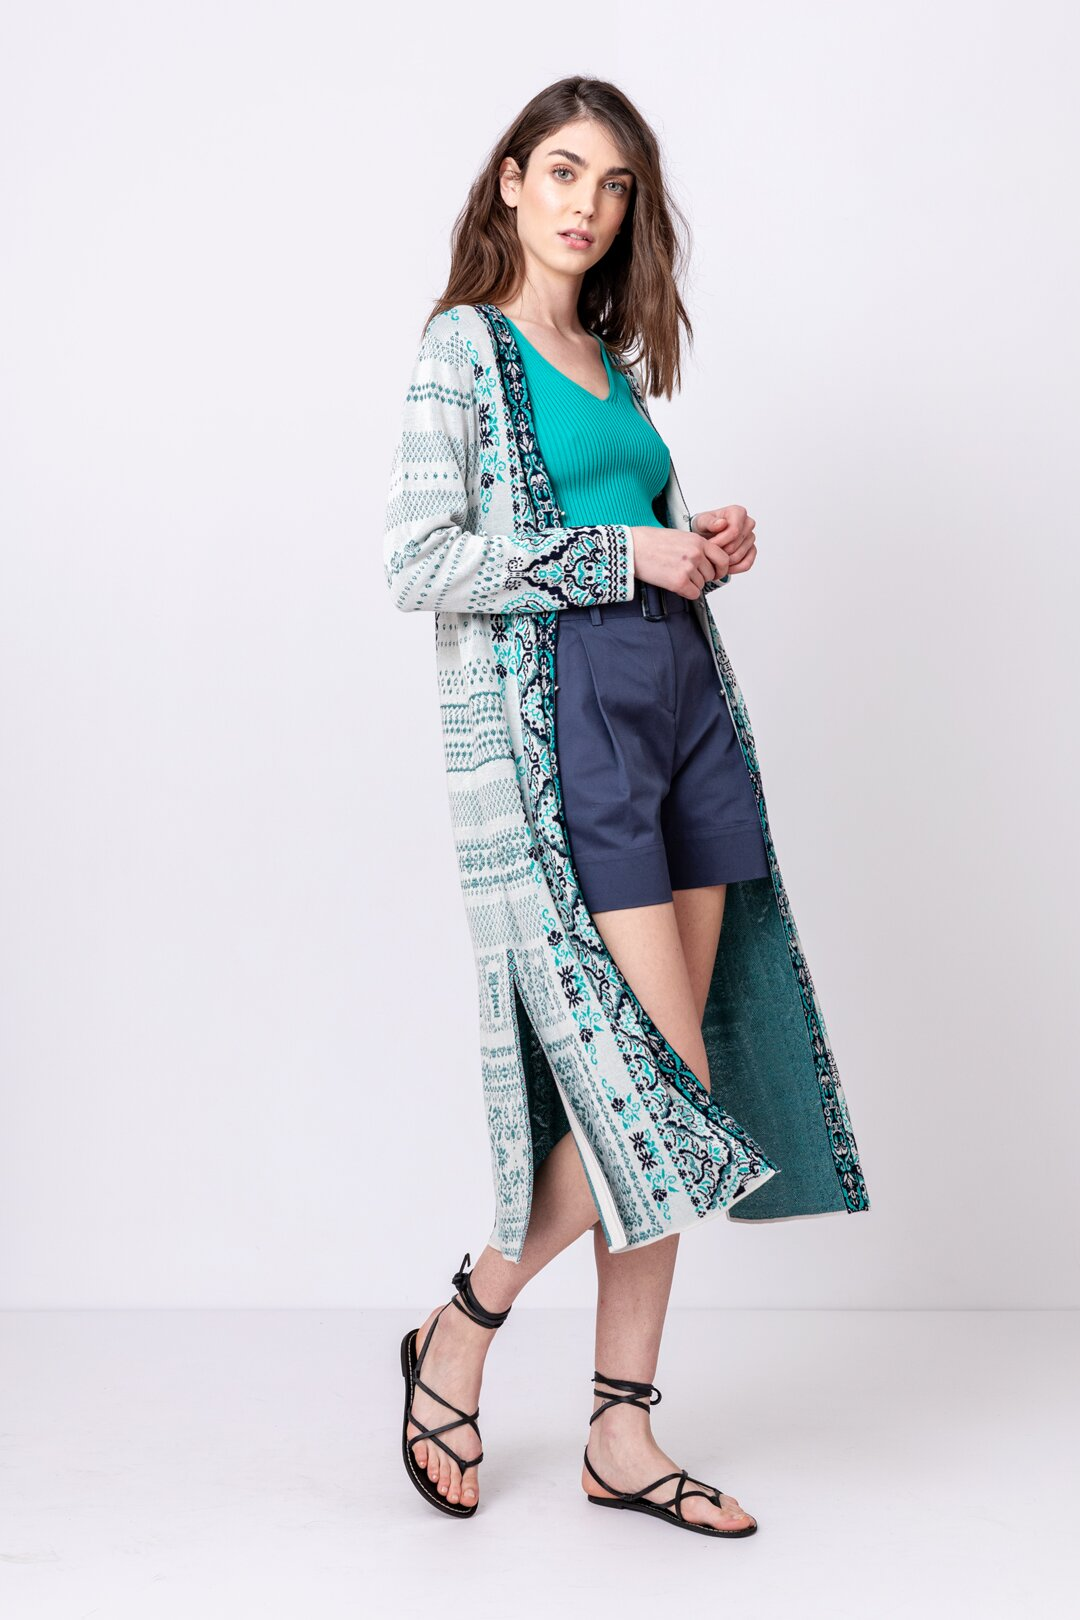 outfit-7c8a0705